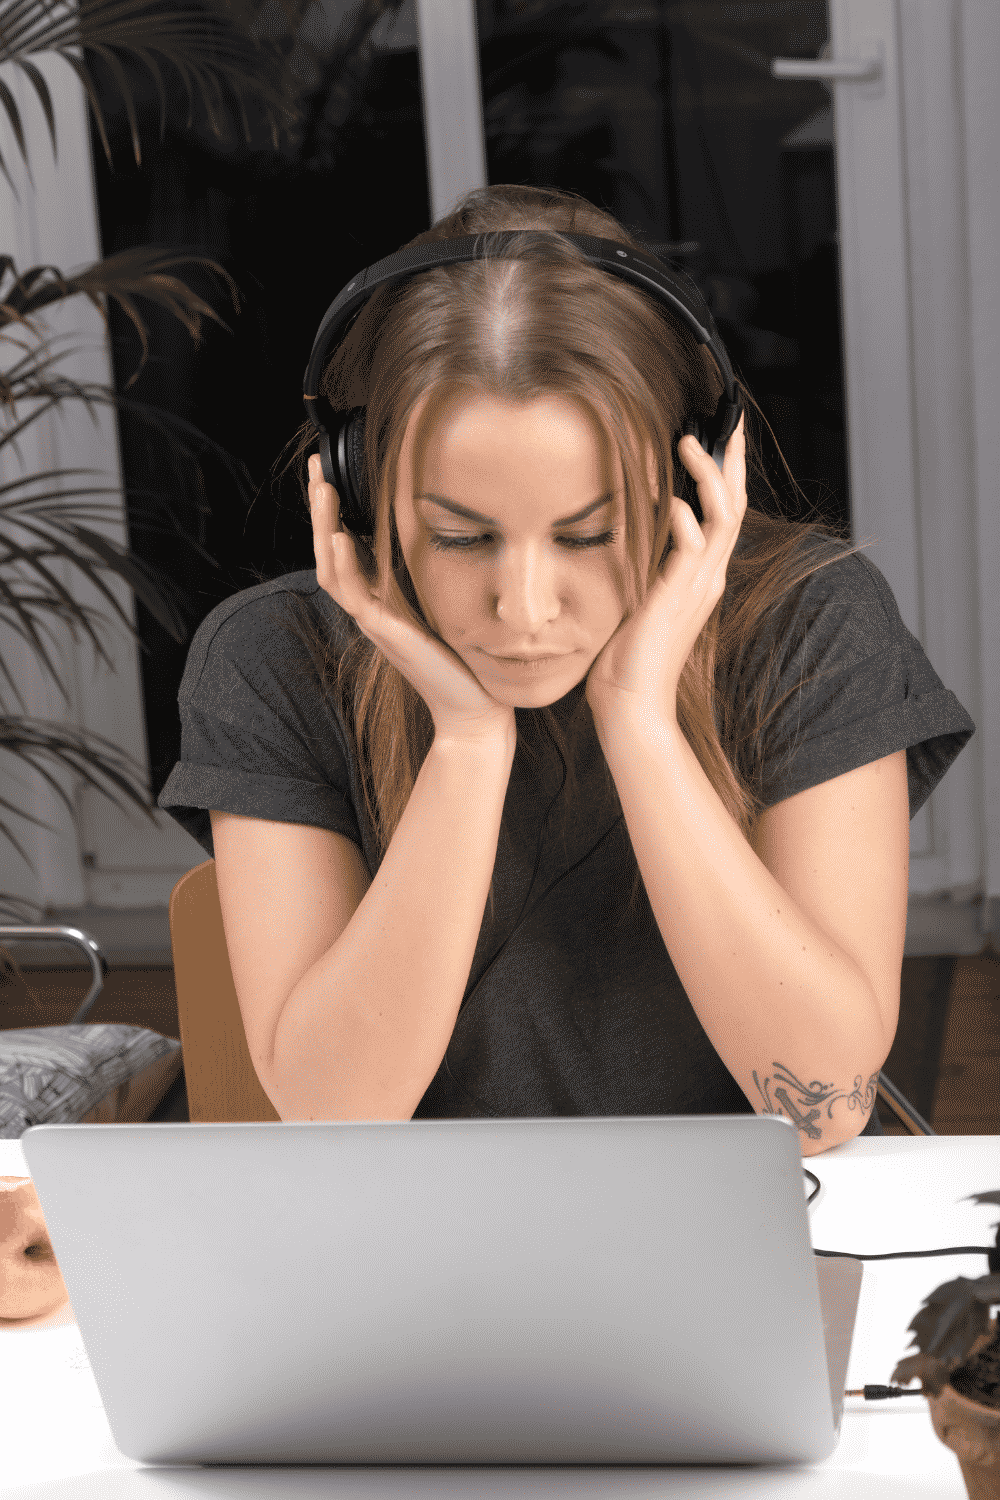 A woman listens to music through headphones while looking at her computer